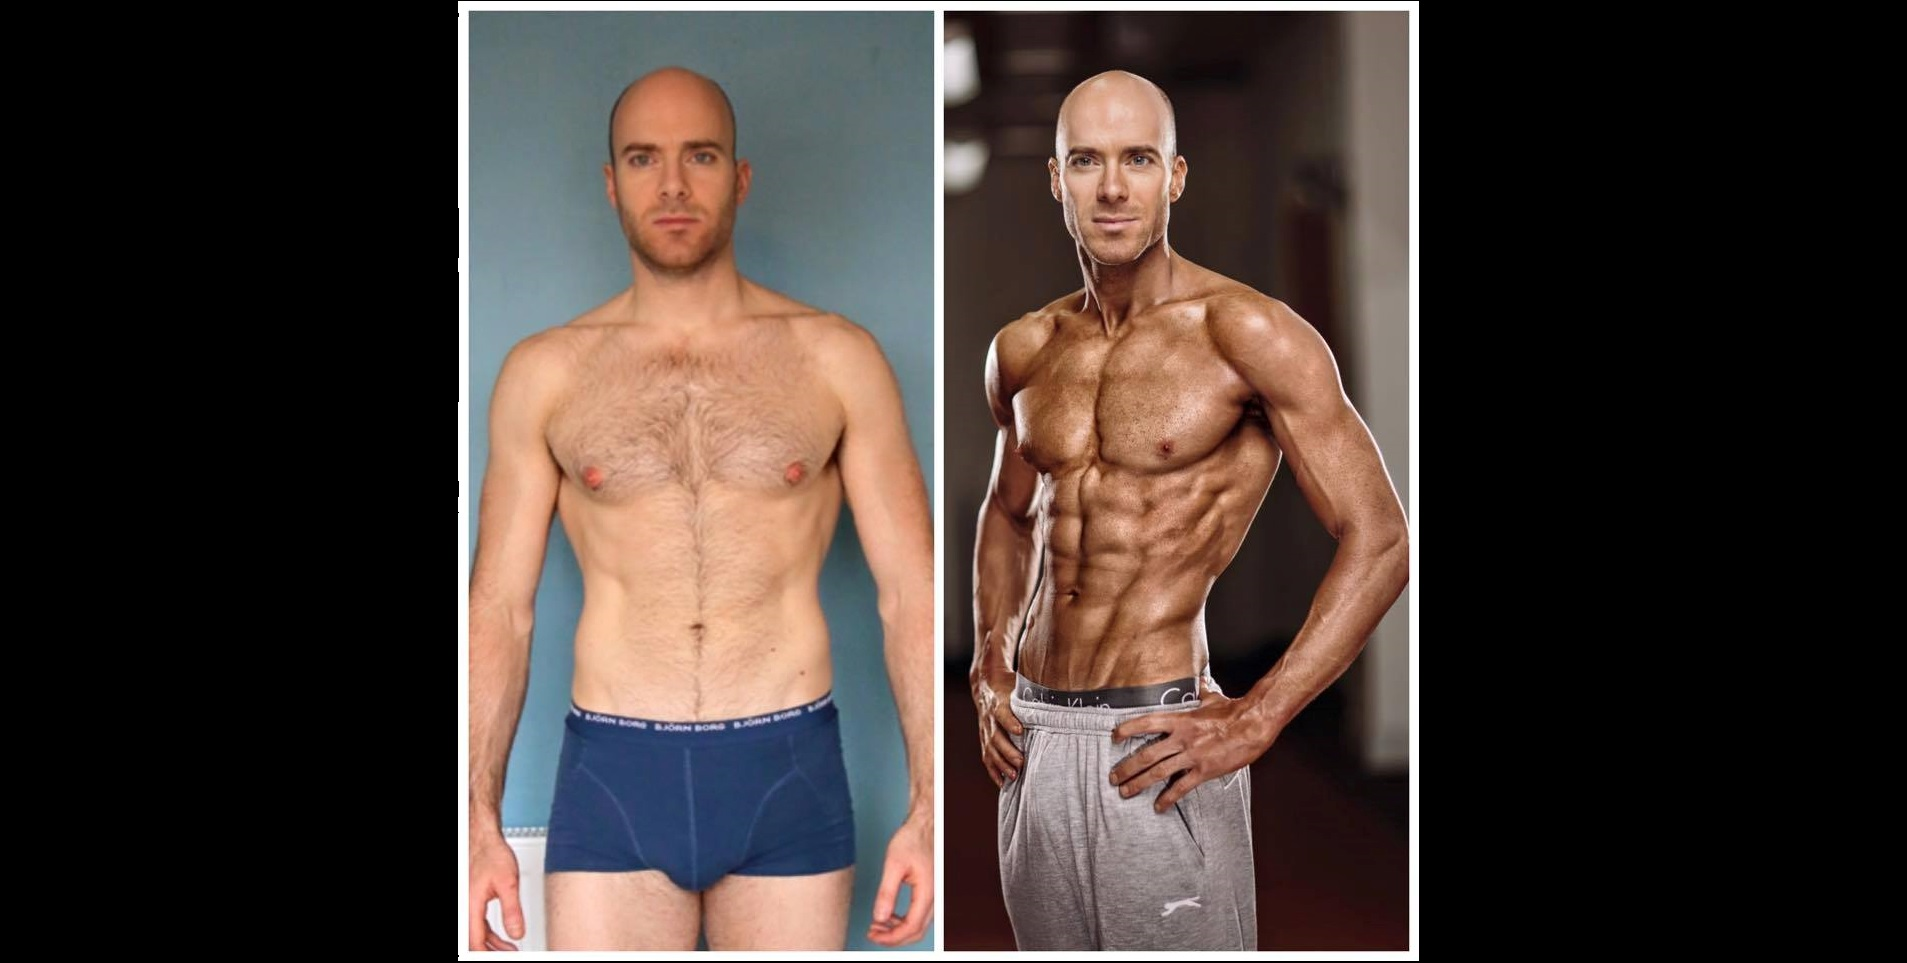 8 genius fat loss tips JOE learned from top body transformation ...